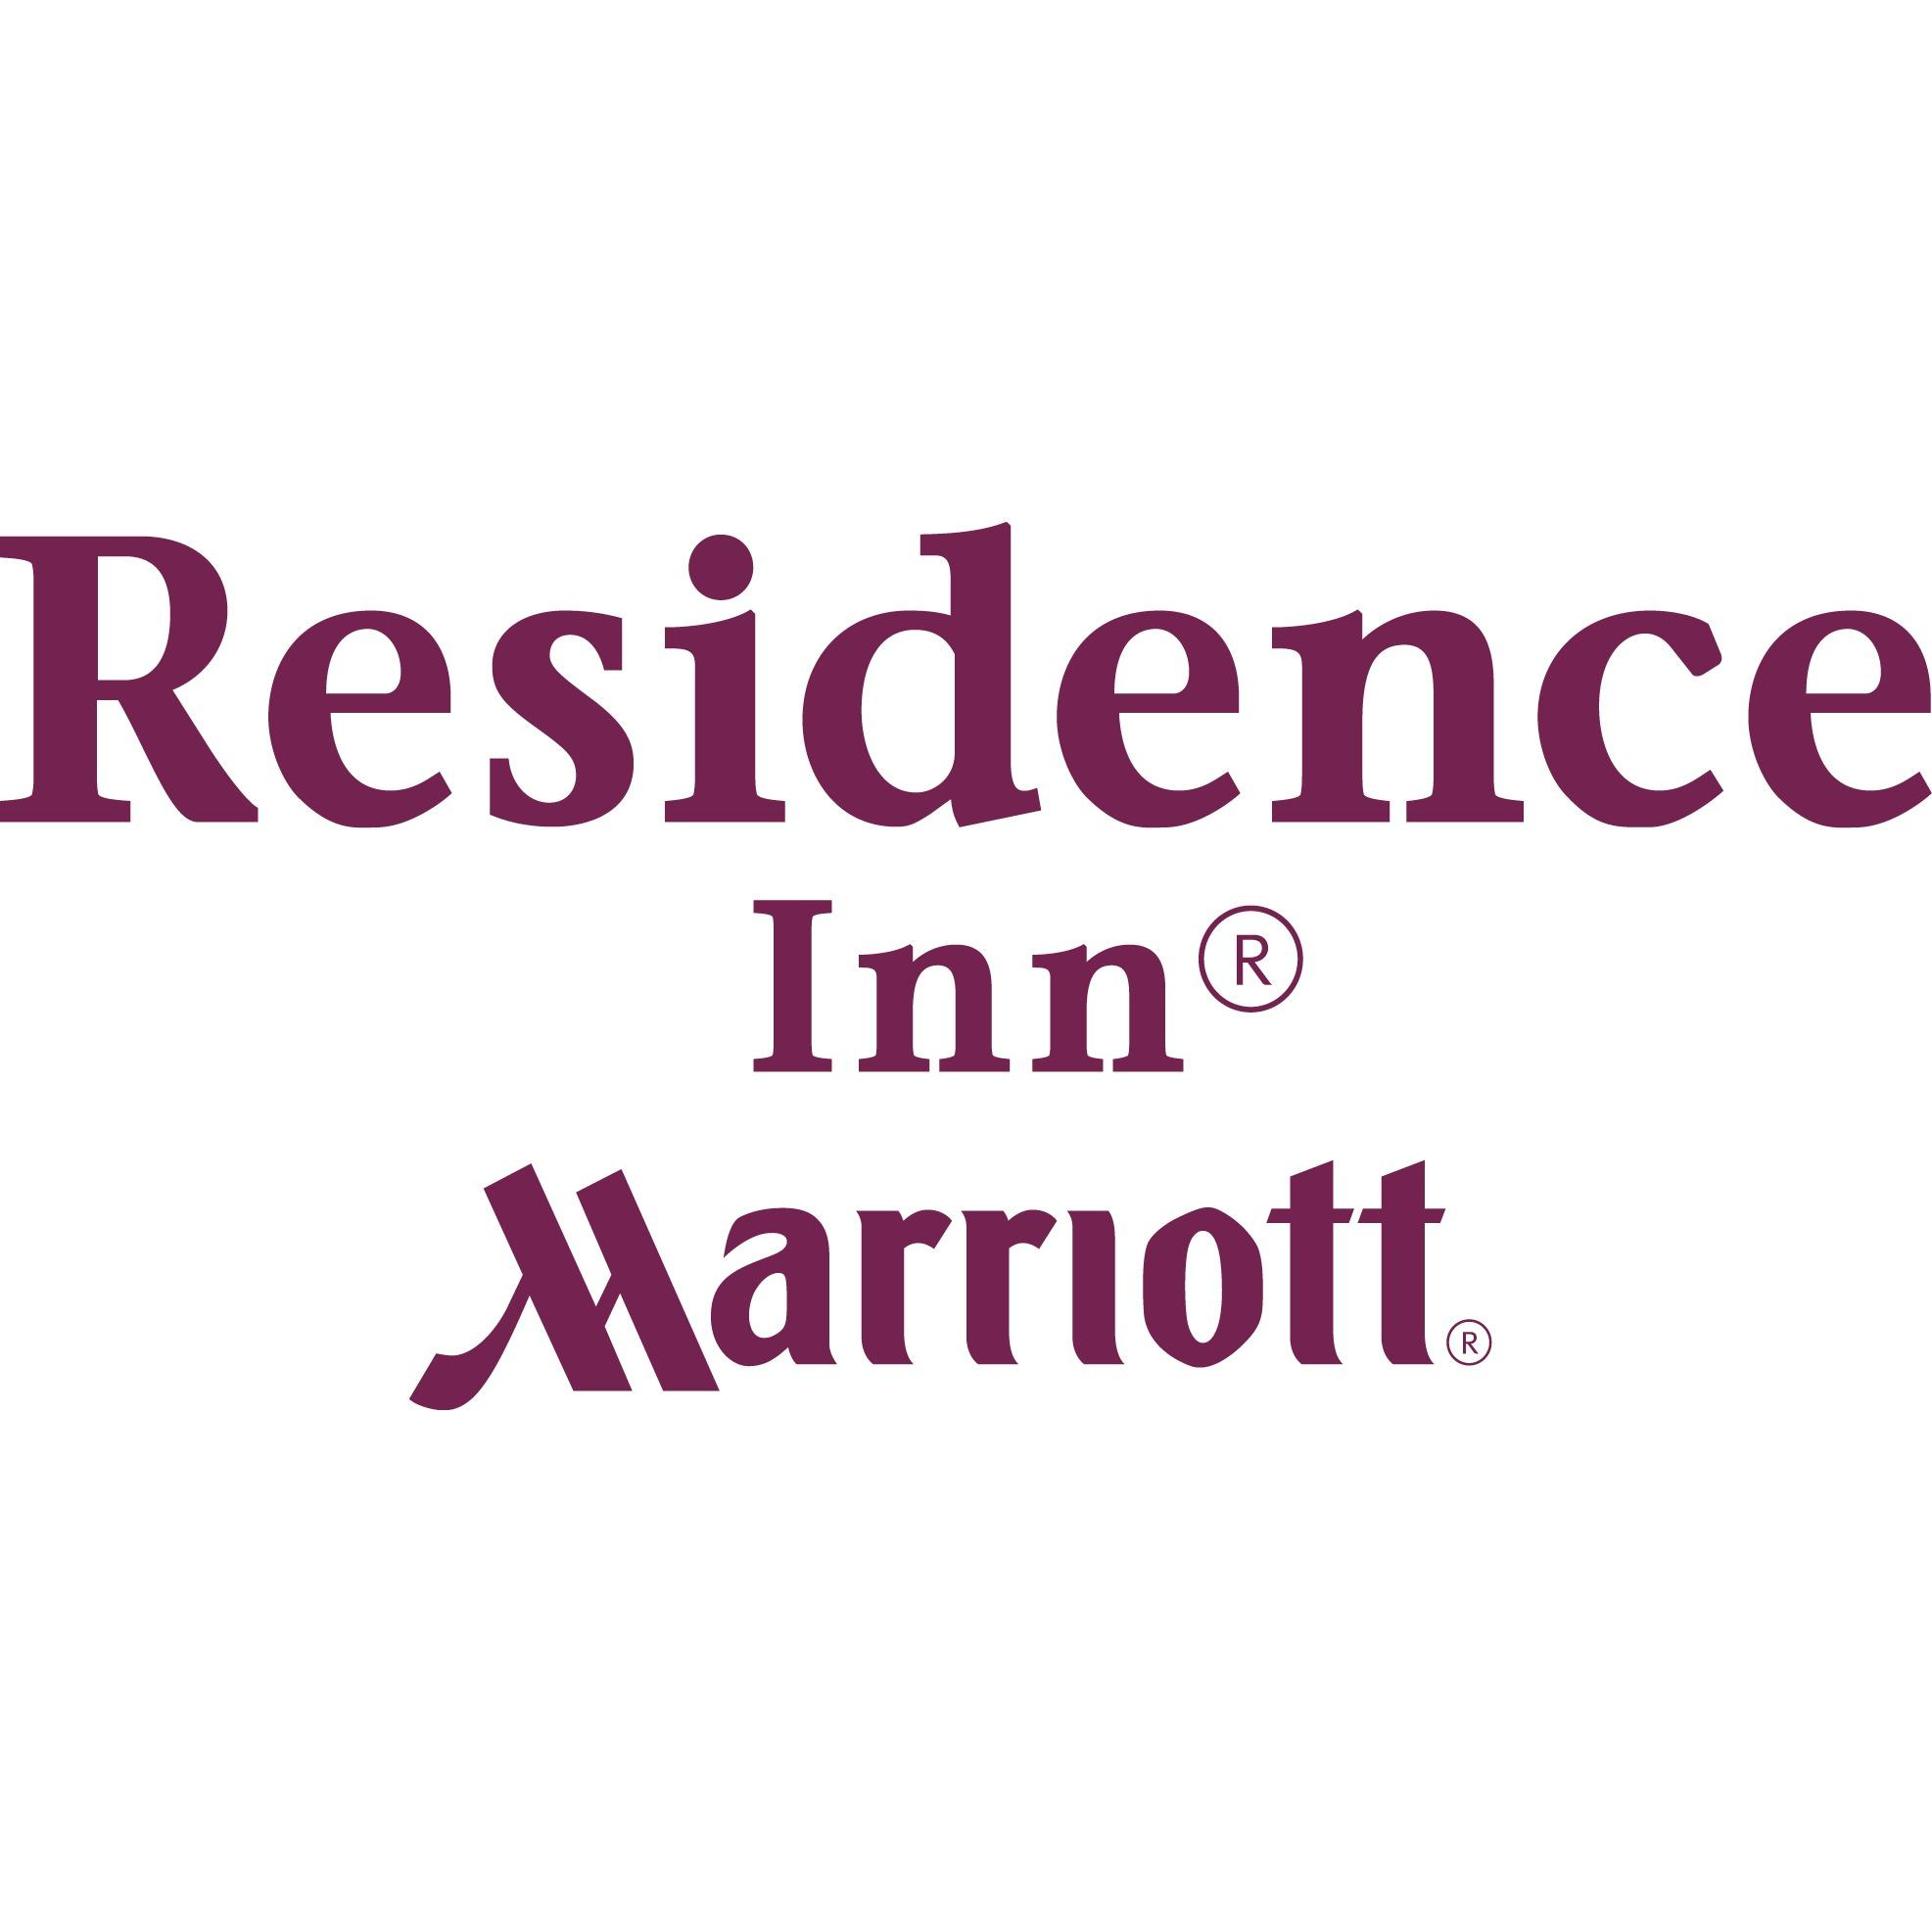 Residence Inn by Marriott Morgantown - Morgantown, WV - Hotels & Motels